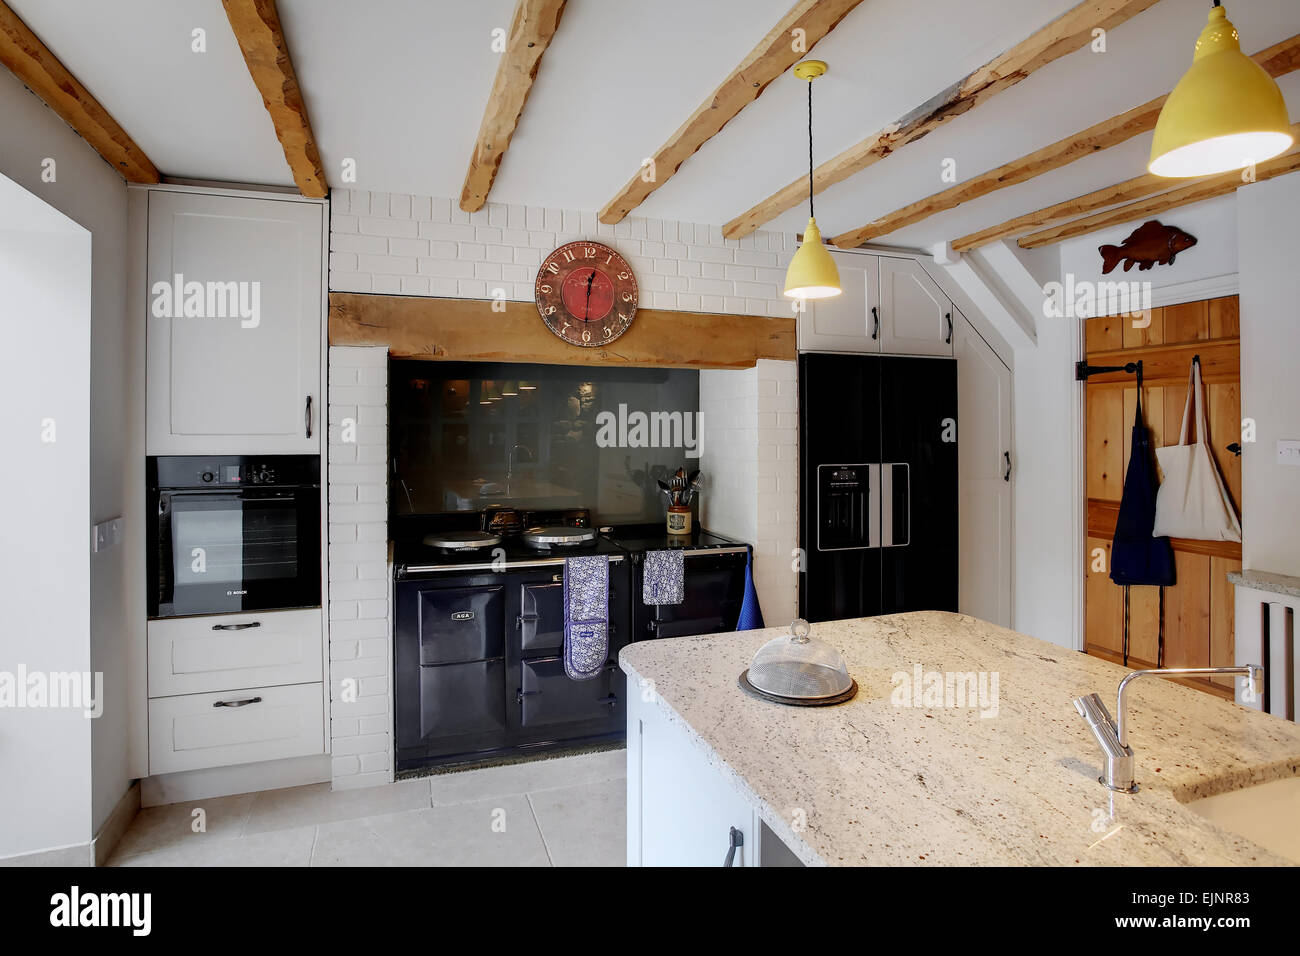 Aga Kitchen Design Uk a traditional style kitchen inside a farmhouse in the uk with a